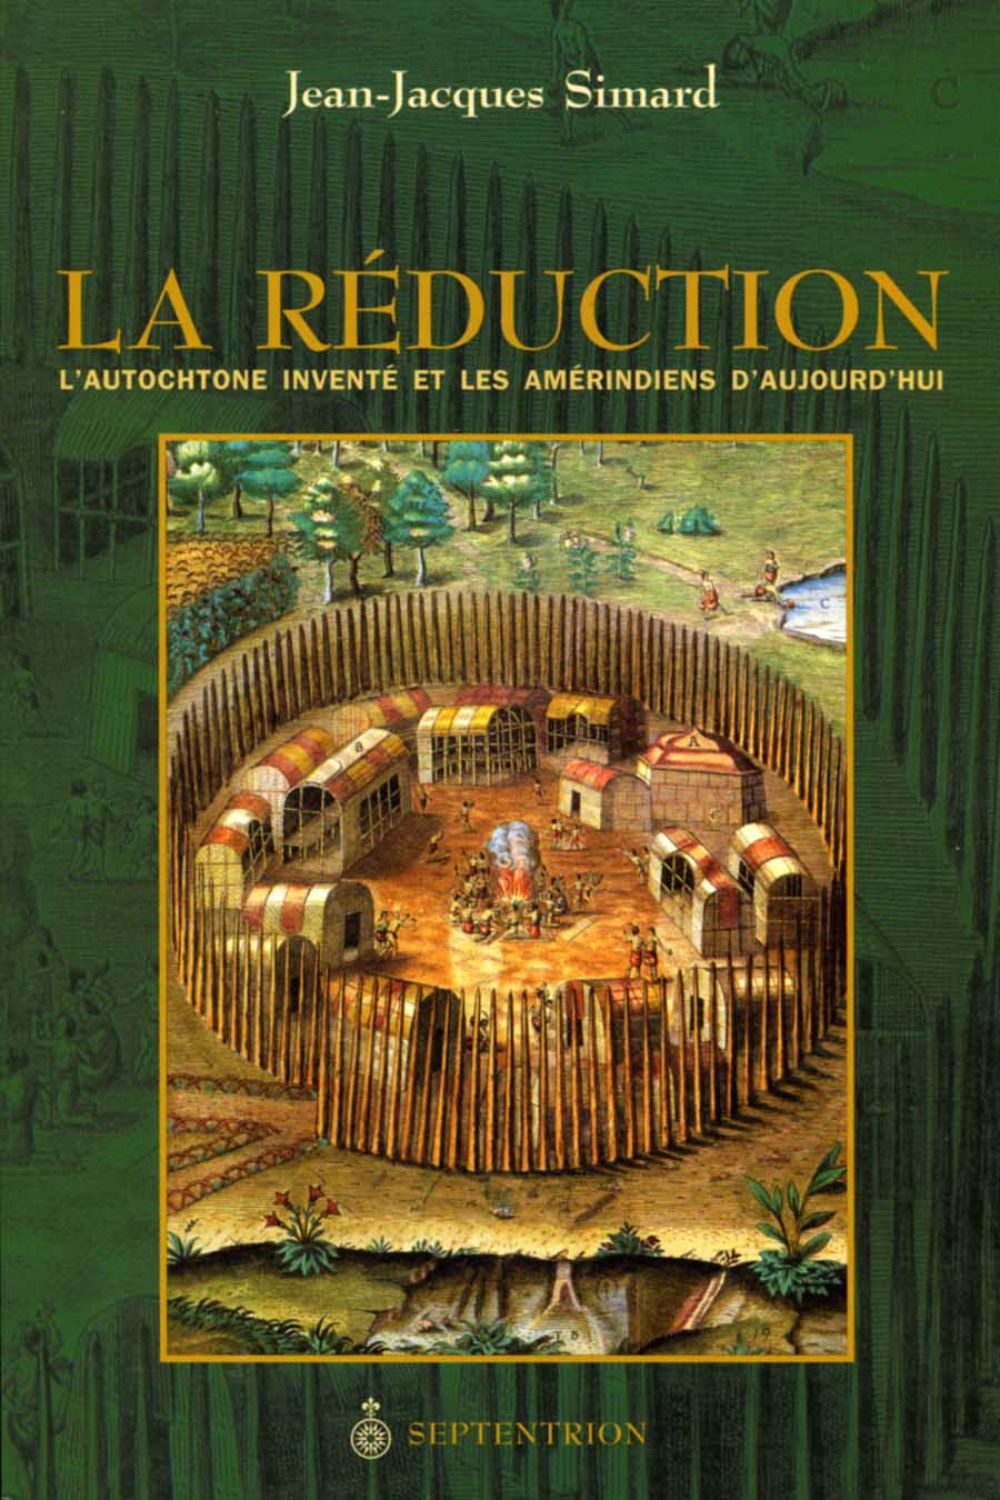 La Réduction